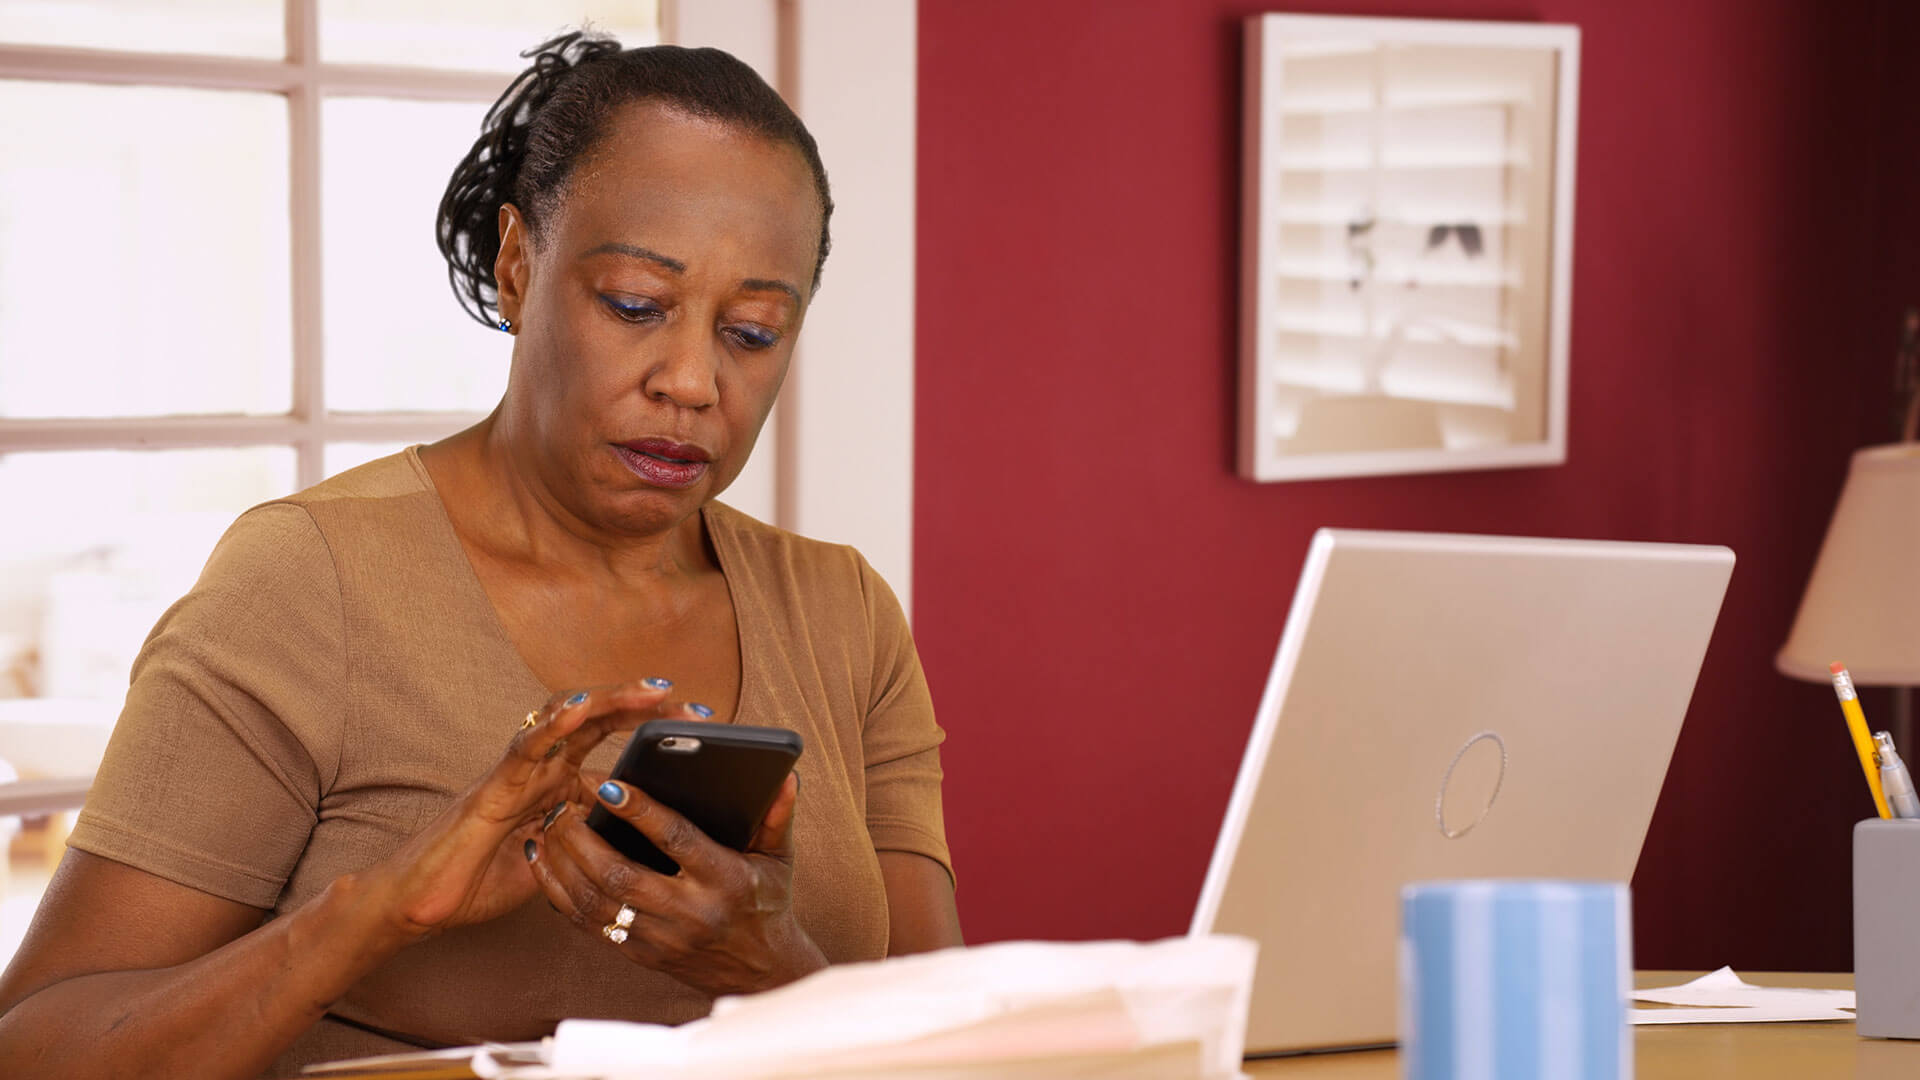 A women participating in a menopause study by using her smartphone while sitting at a desk.